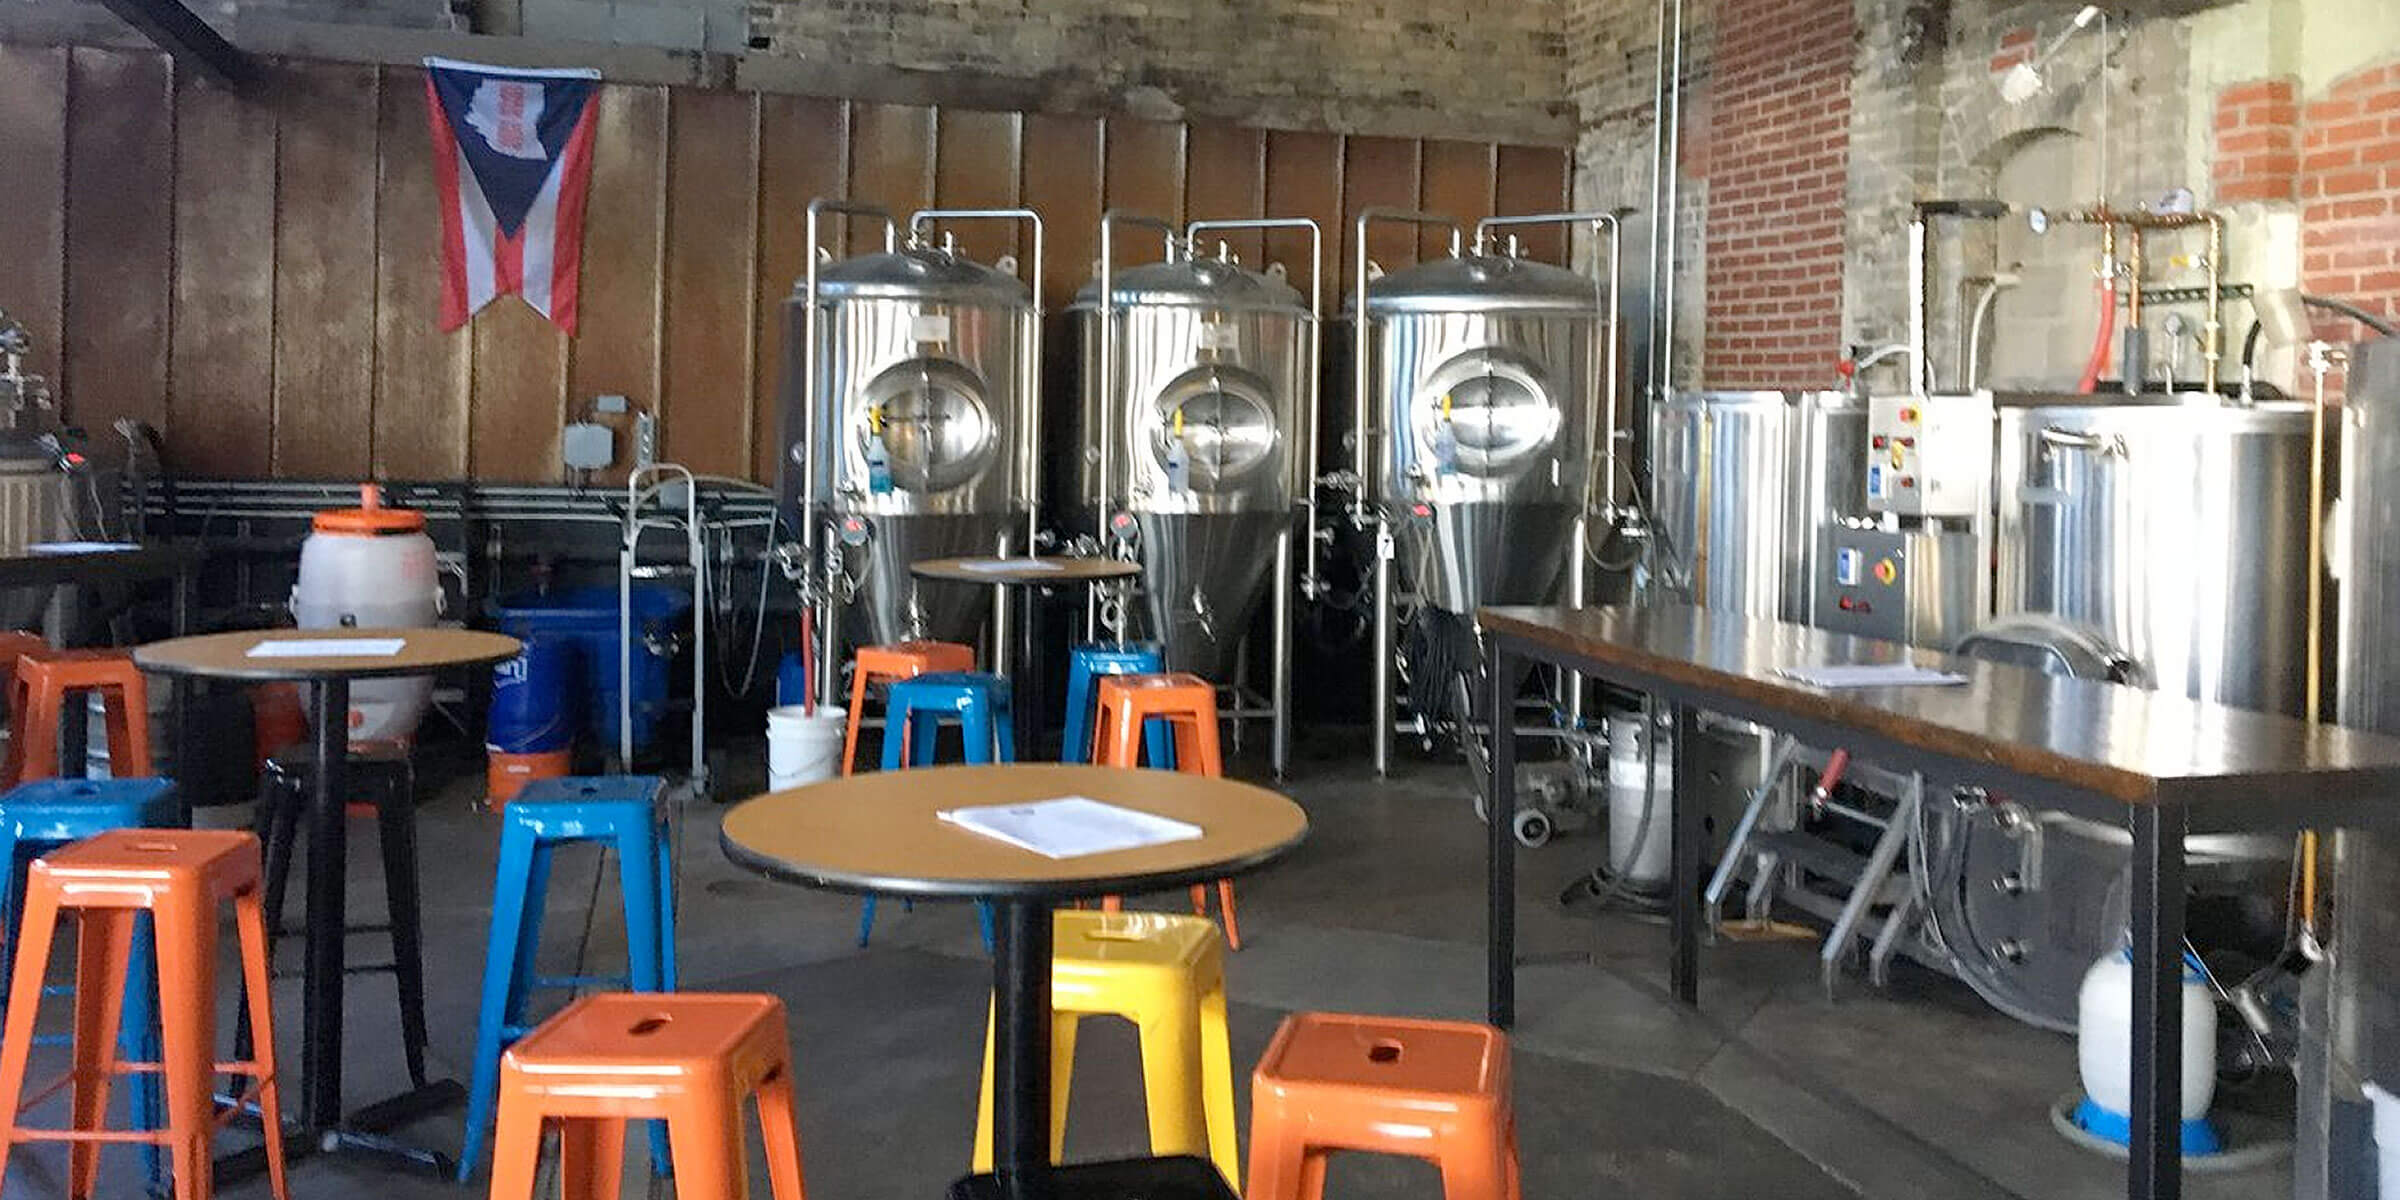 Inside the taproom at Platform Beer Co. in Columbus, Ohio